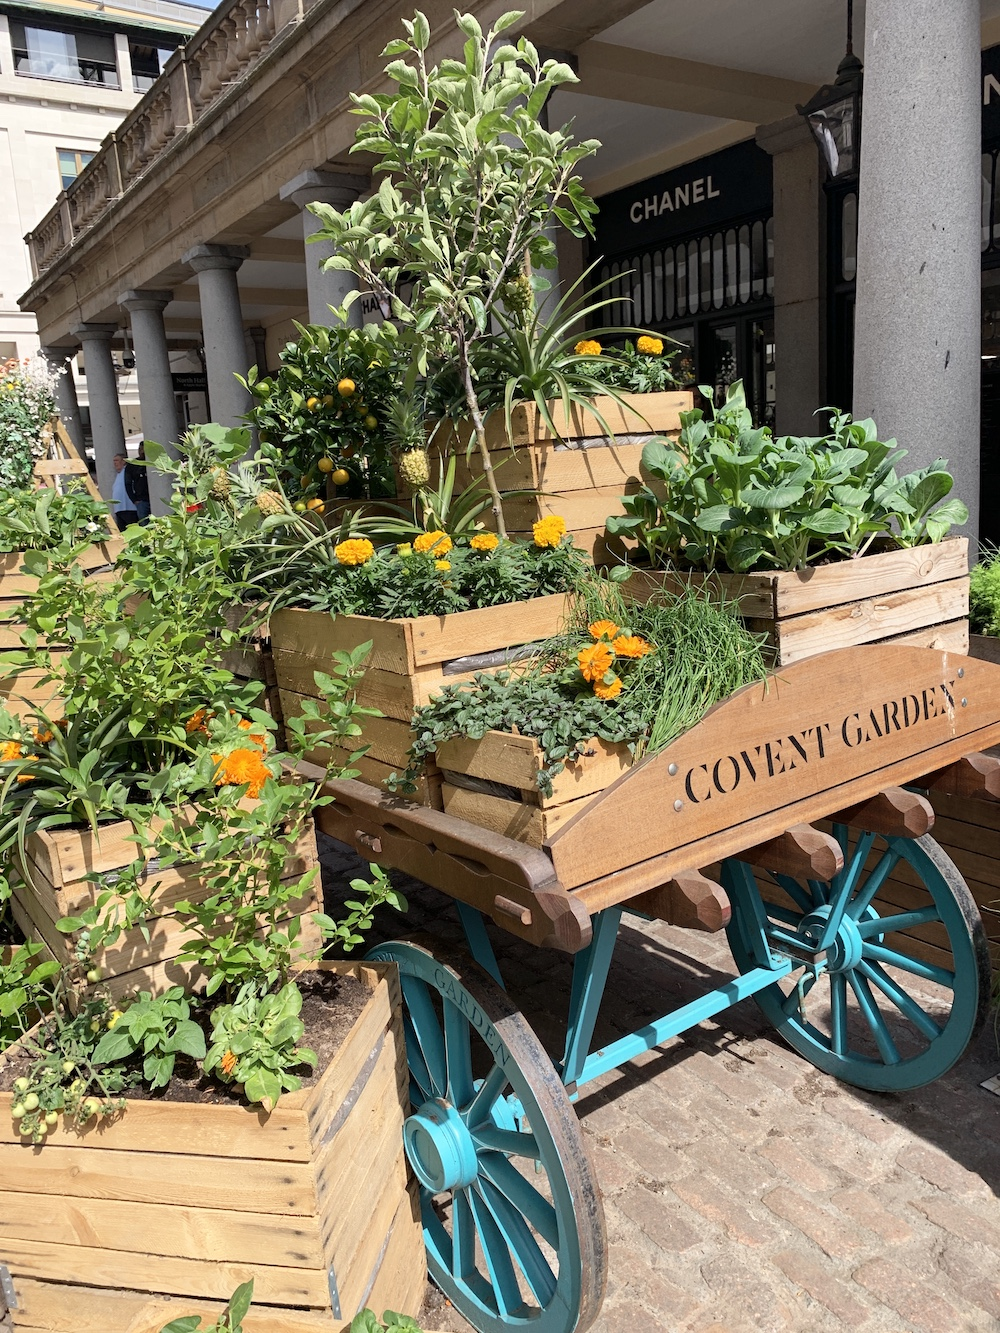 Crate Gardening for Small Spaces Covent Garden Wagon With Crates #Garden #Gardening #SmallSpace #SmallSpaceGardening #ContainerGardening #VegetableGarden #HerbGarden #PorchGarden #PatioGarden